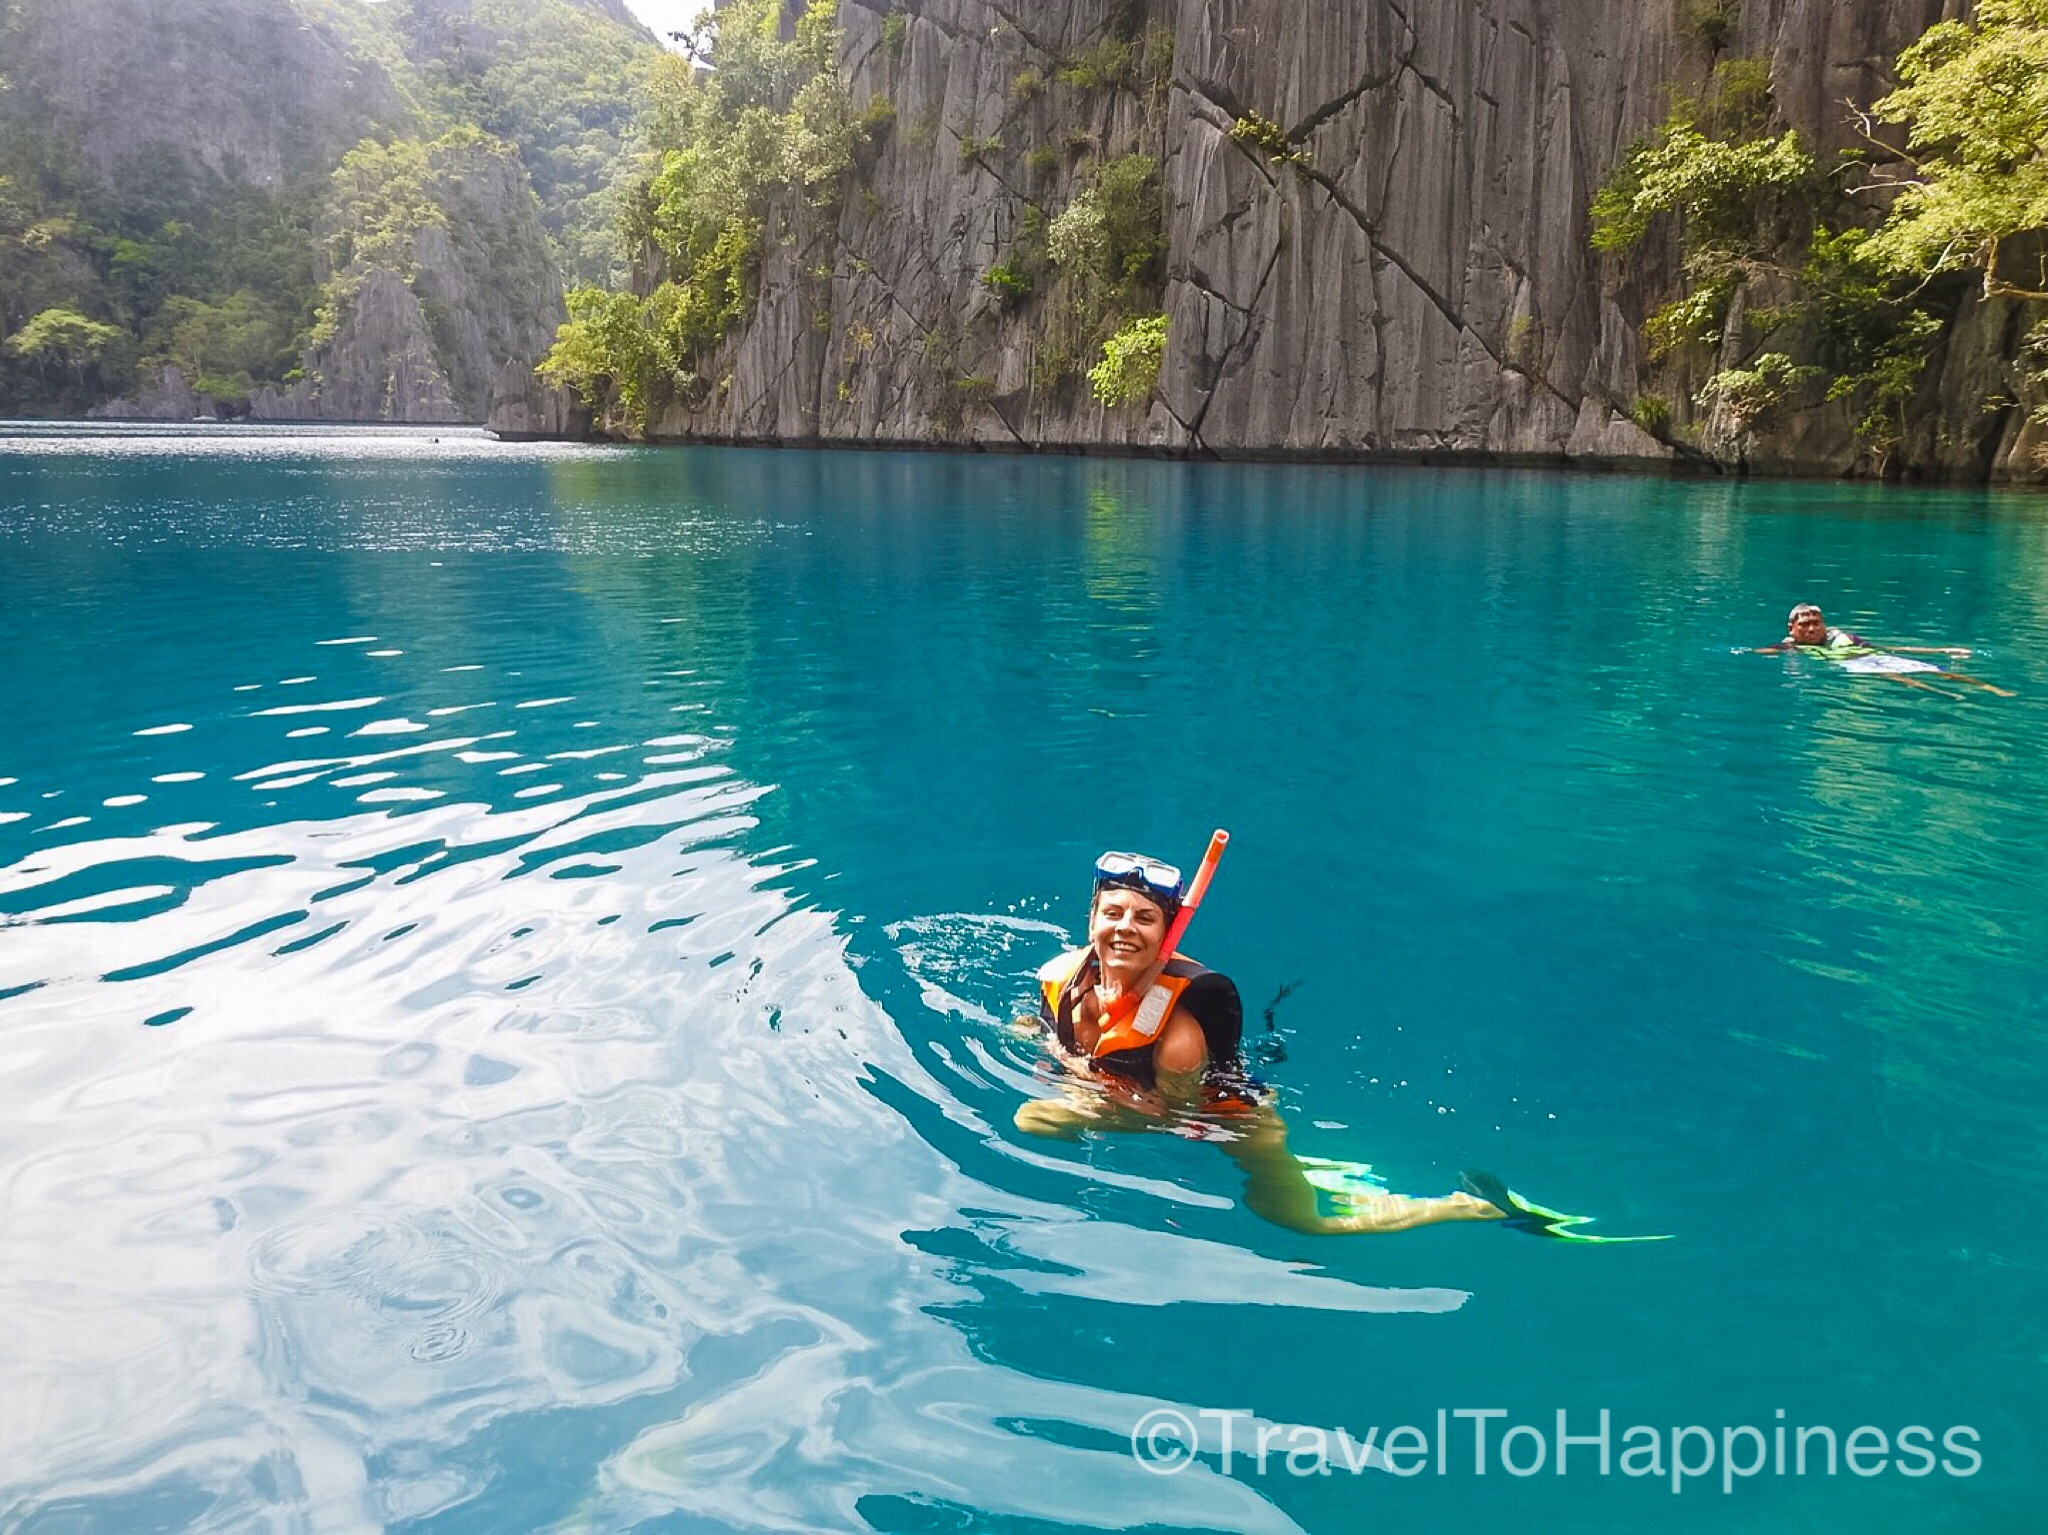 Barracuda, The most spectacular Lake in Palawan